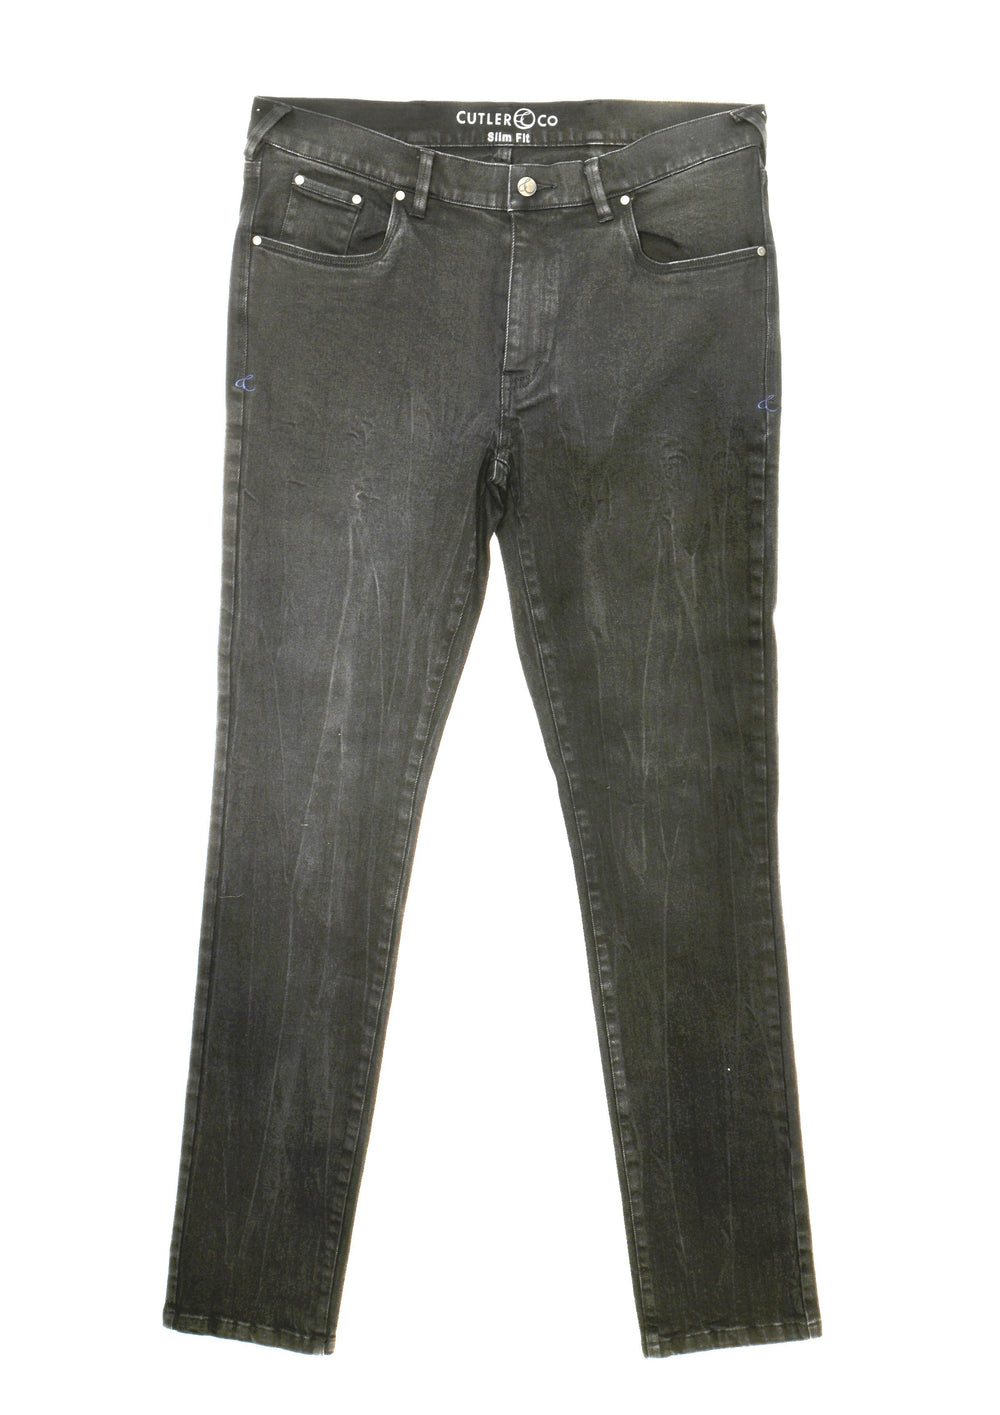 Cutler Tony Slim fit Jean